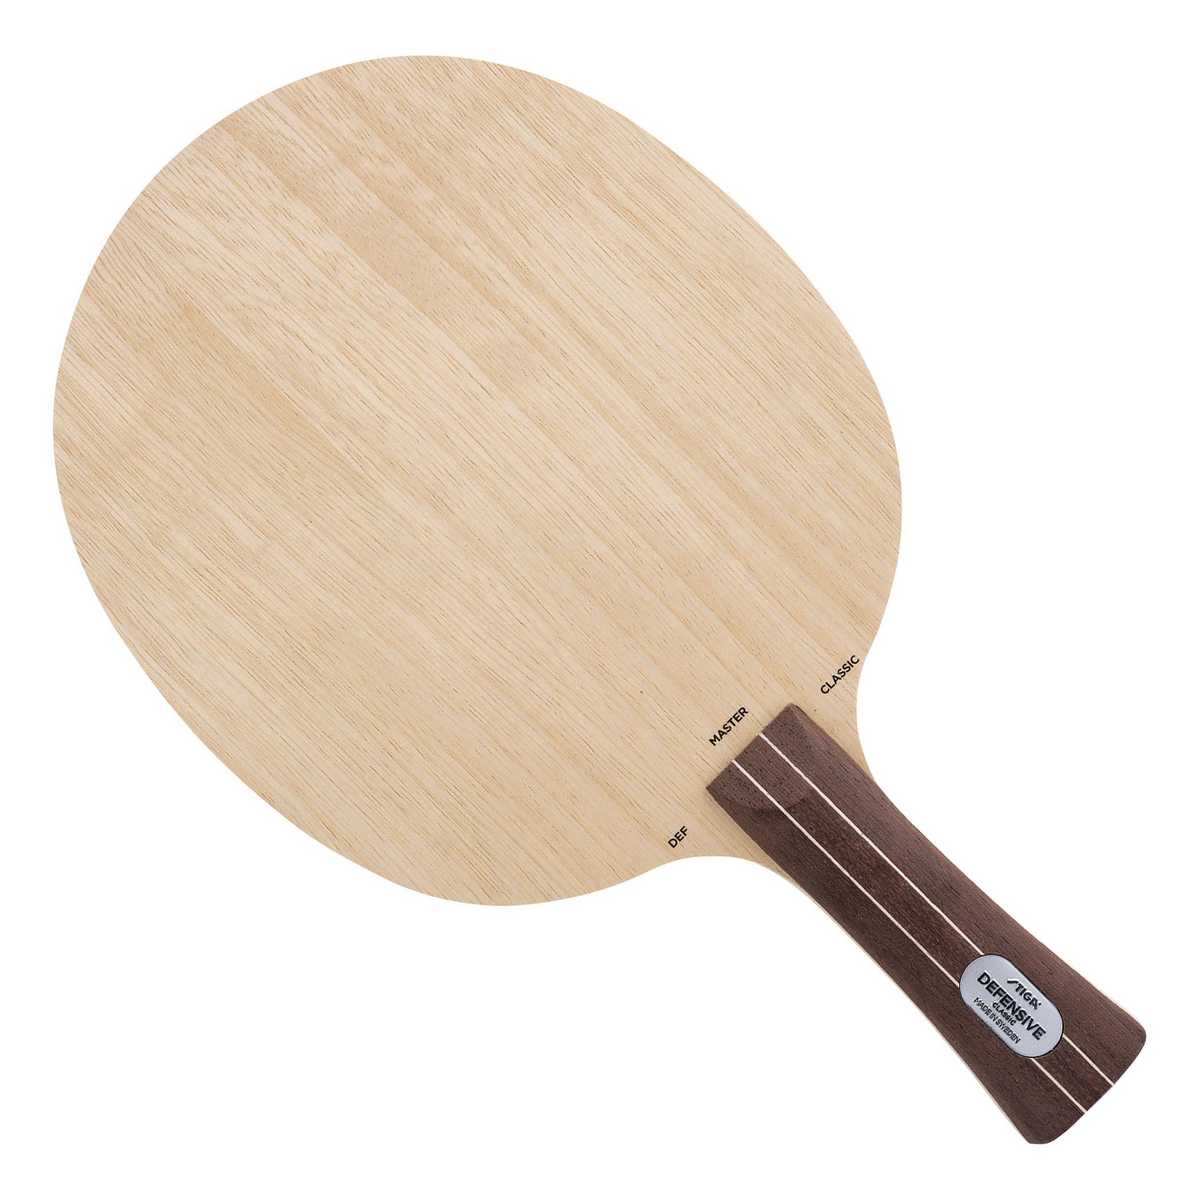 Nettoyer bois raquette tennis de table